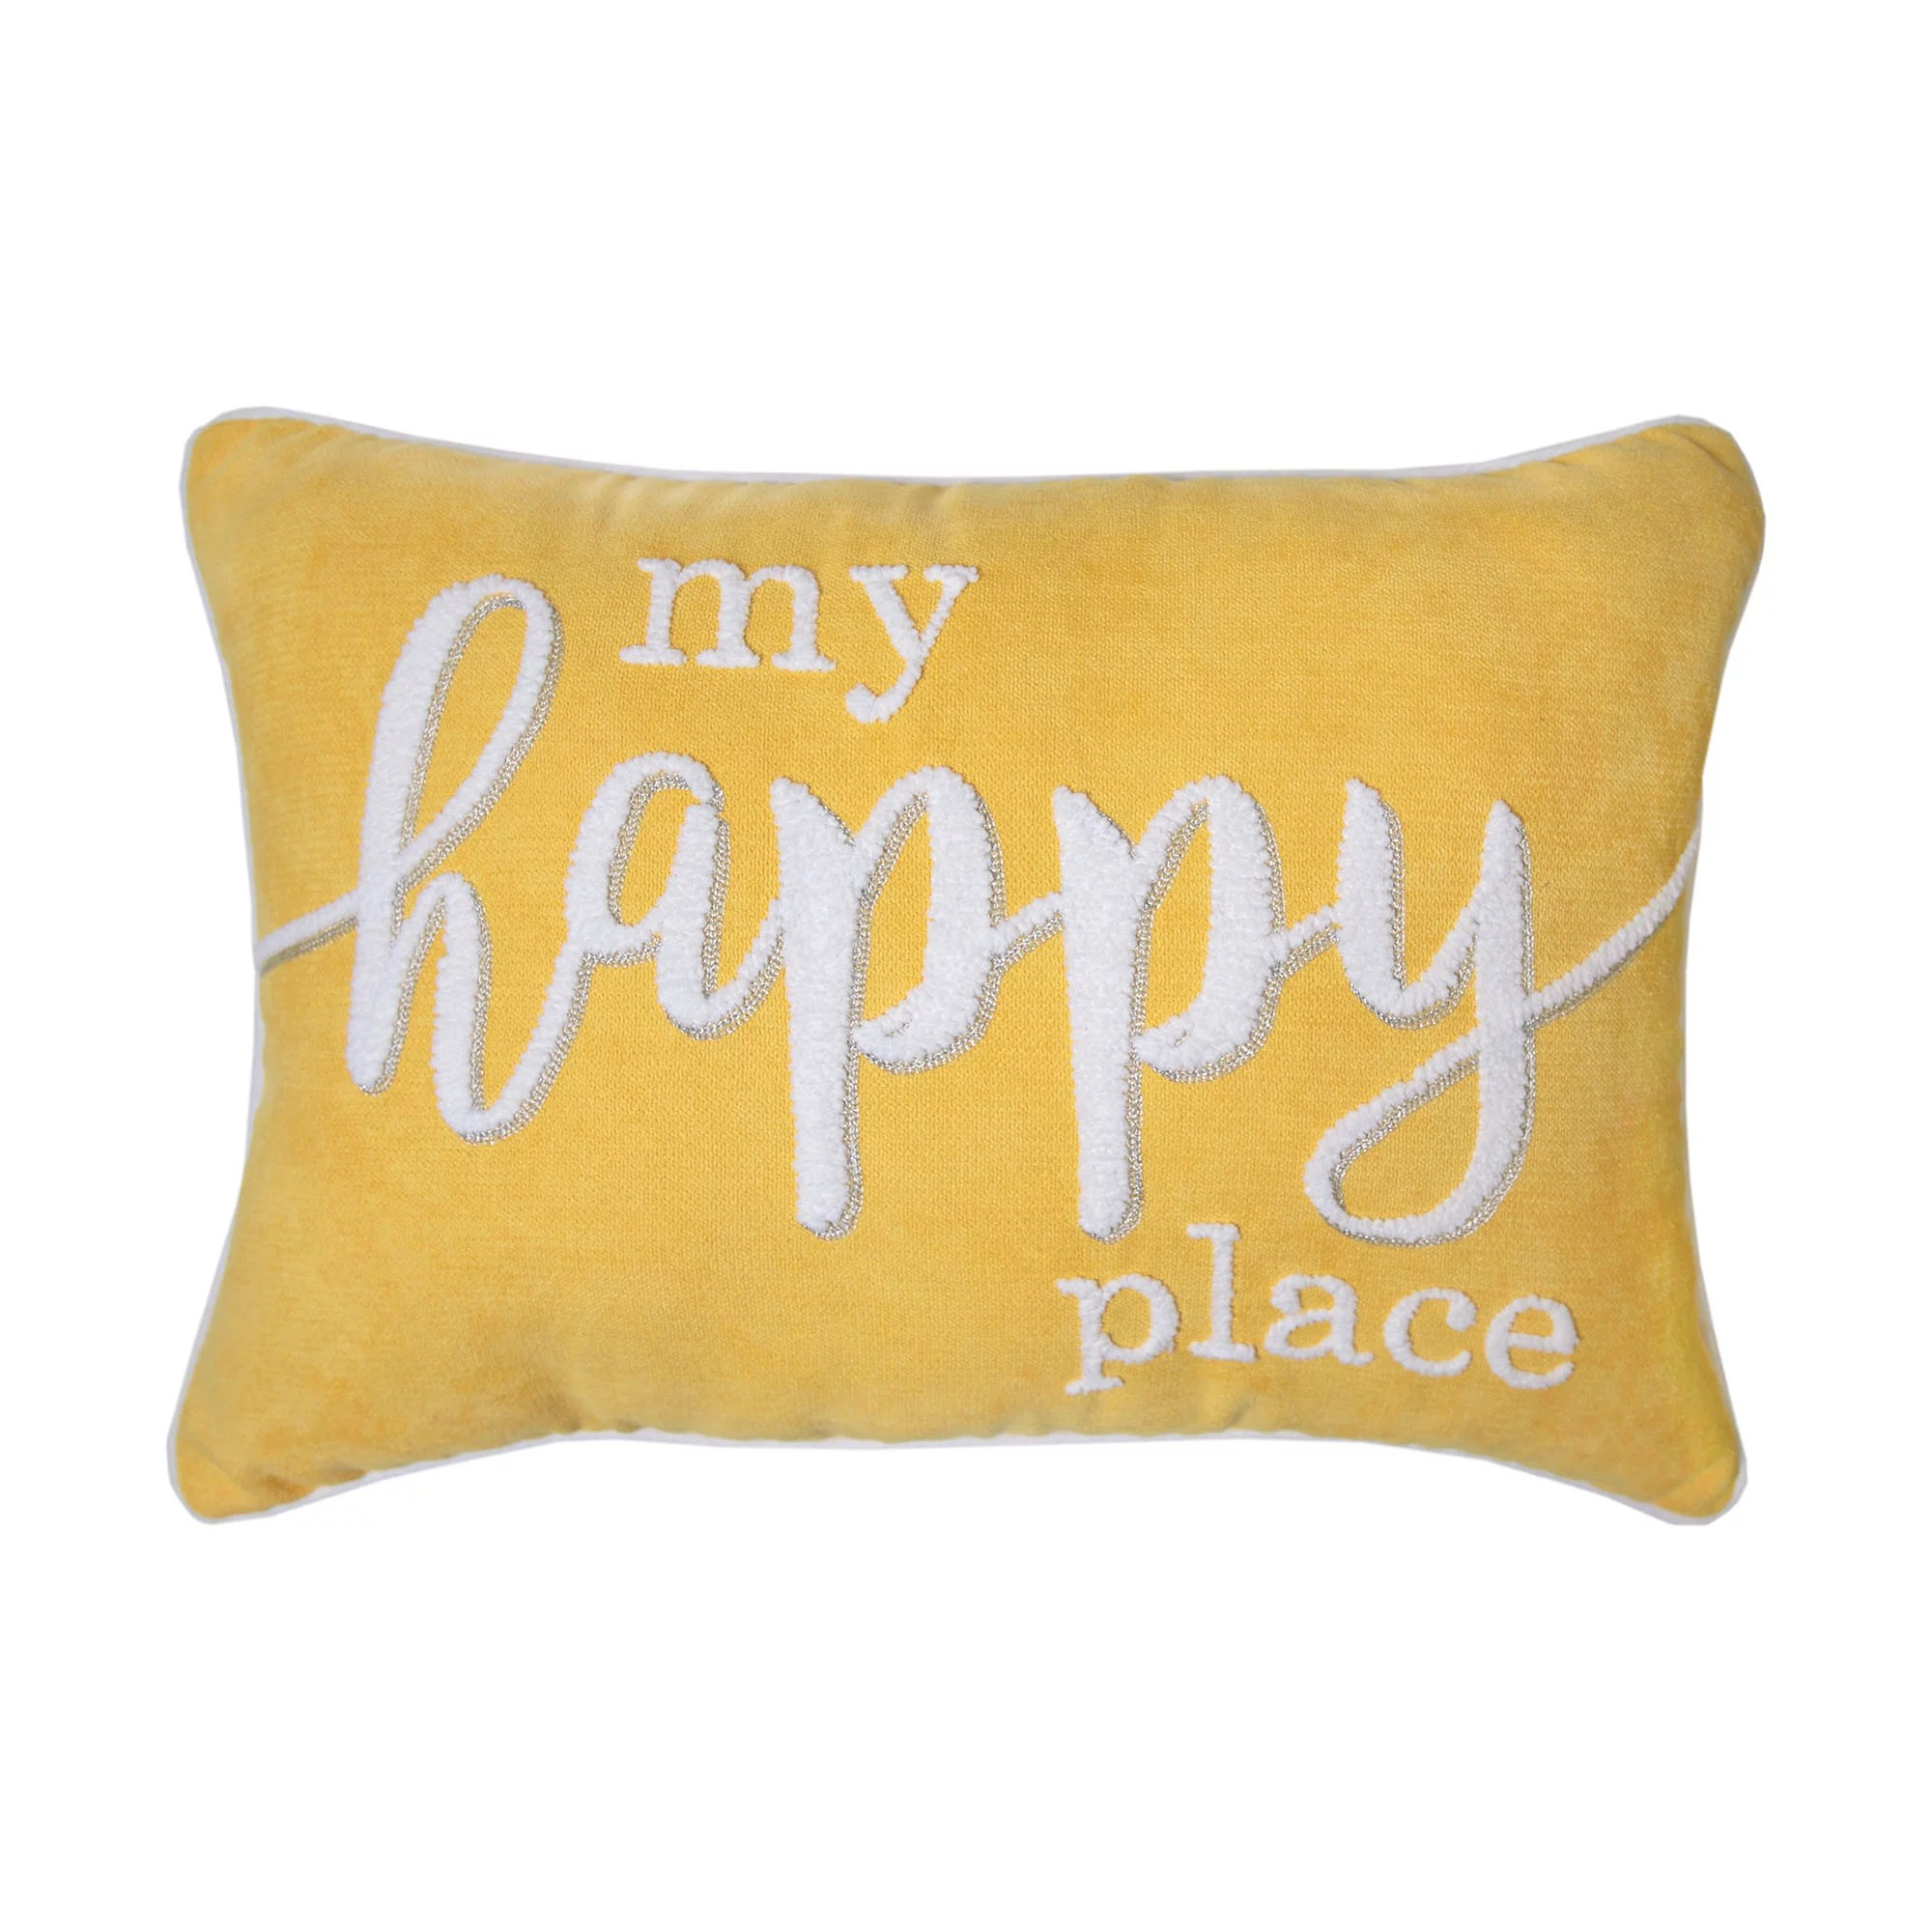 better homes gardens decorative throw pillow my happy place oblong yellow 14 x 20 1pack